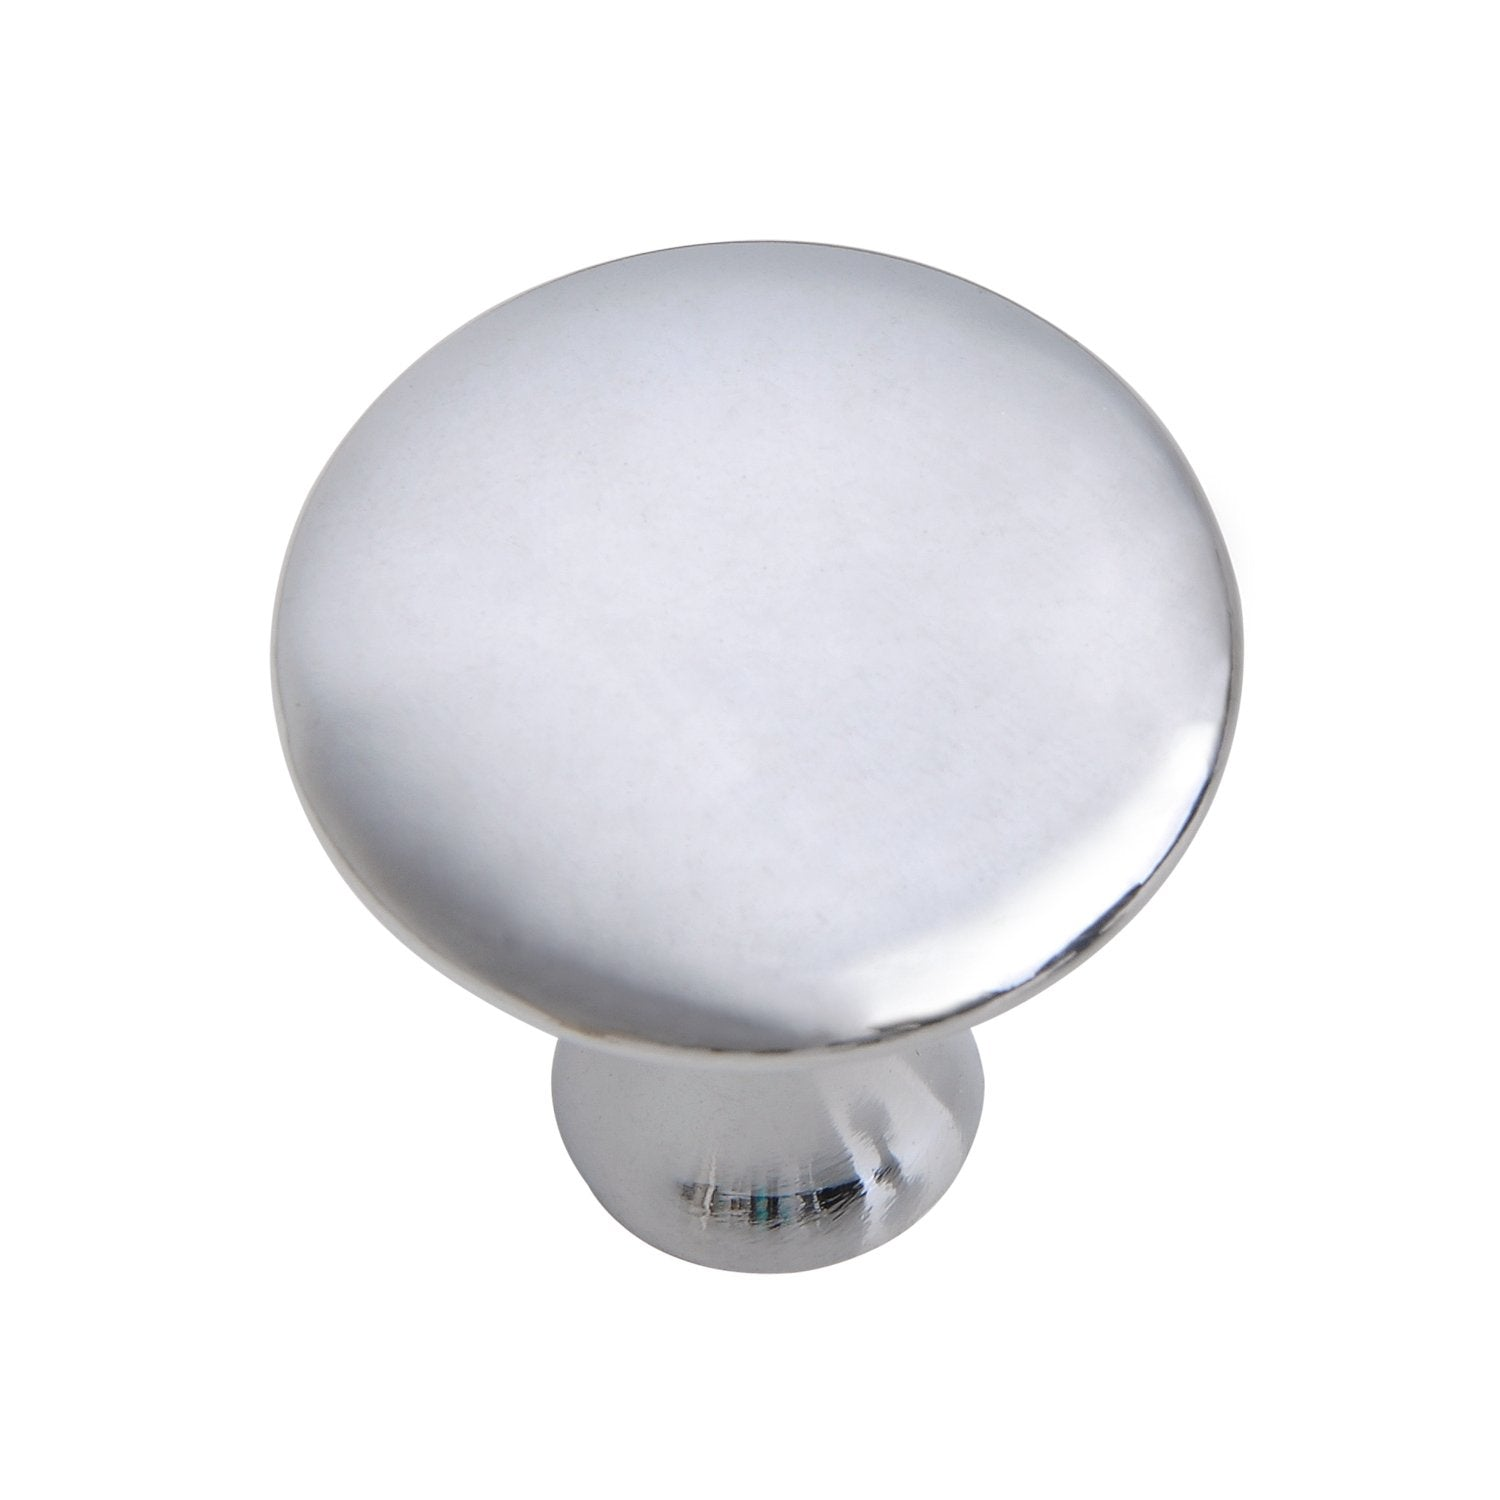 "Loft97 Charlton Cabinet Knob, 1.2"" Diameter, Polished Chrome"